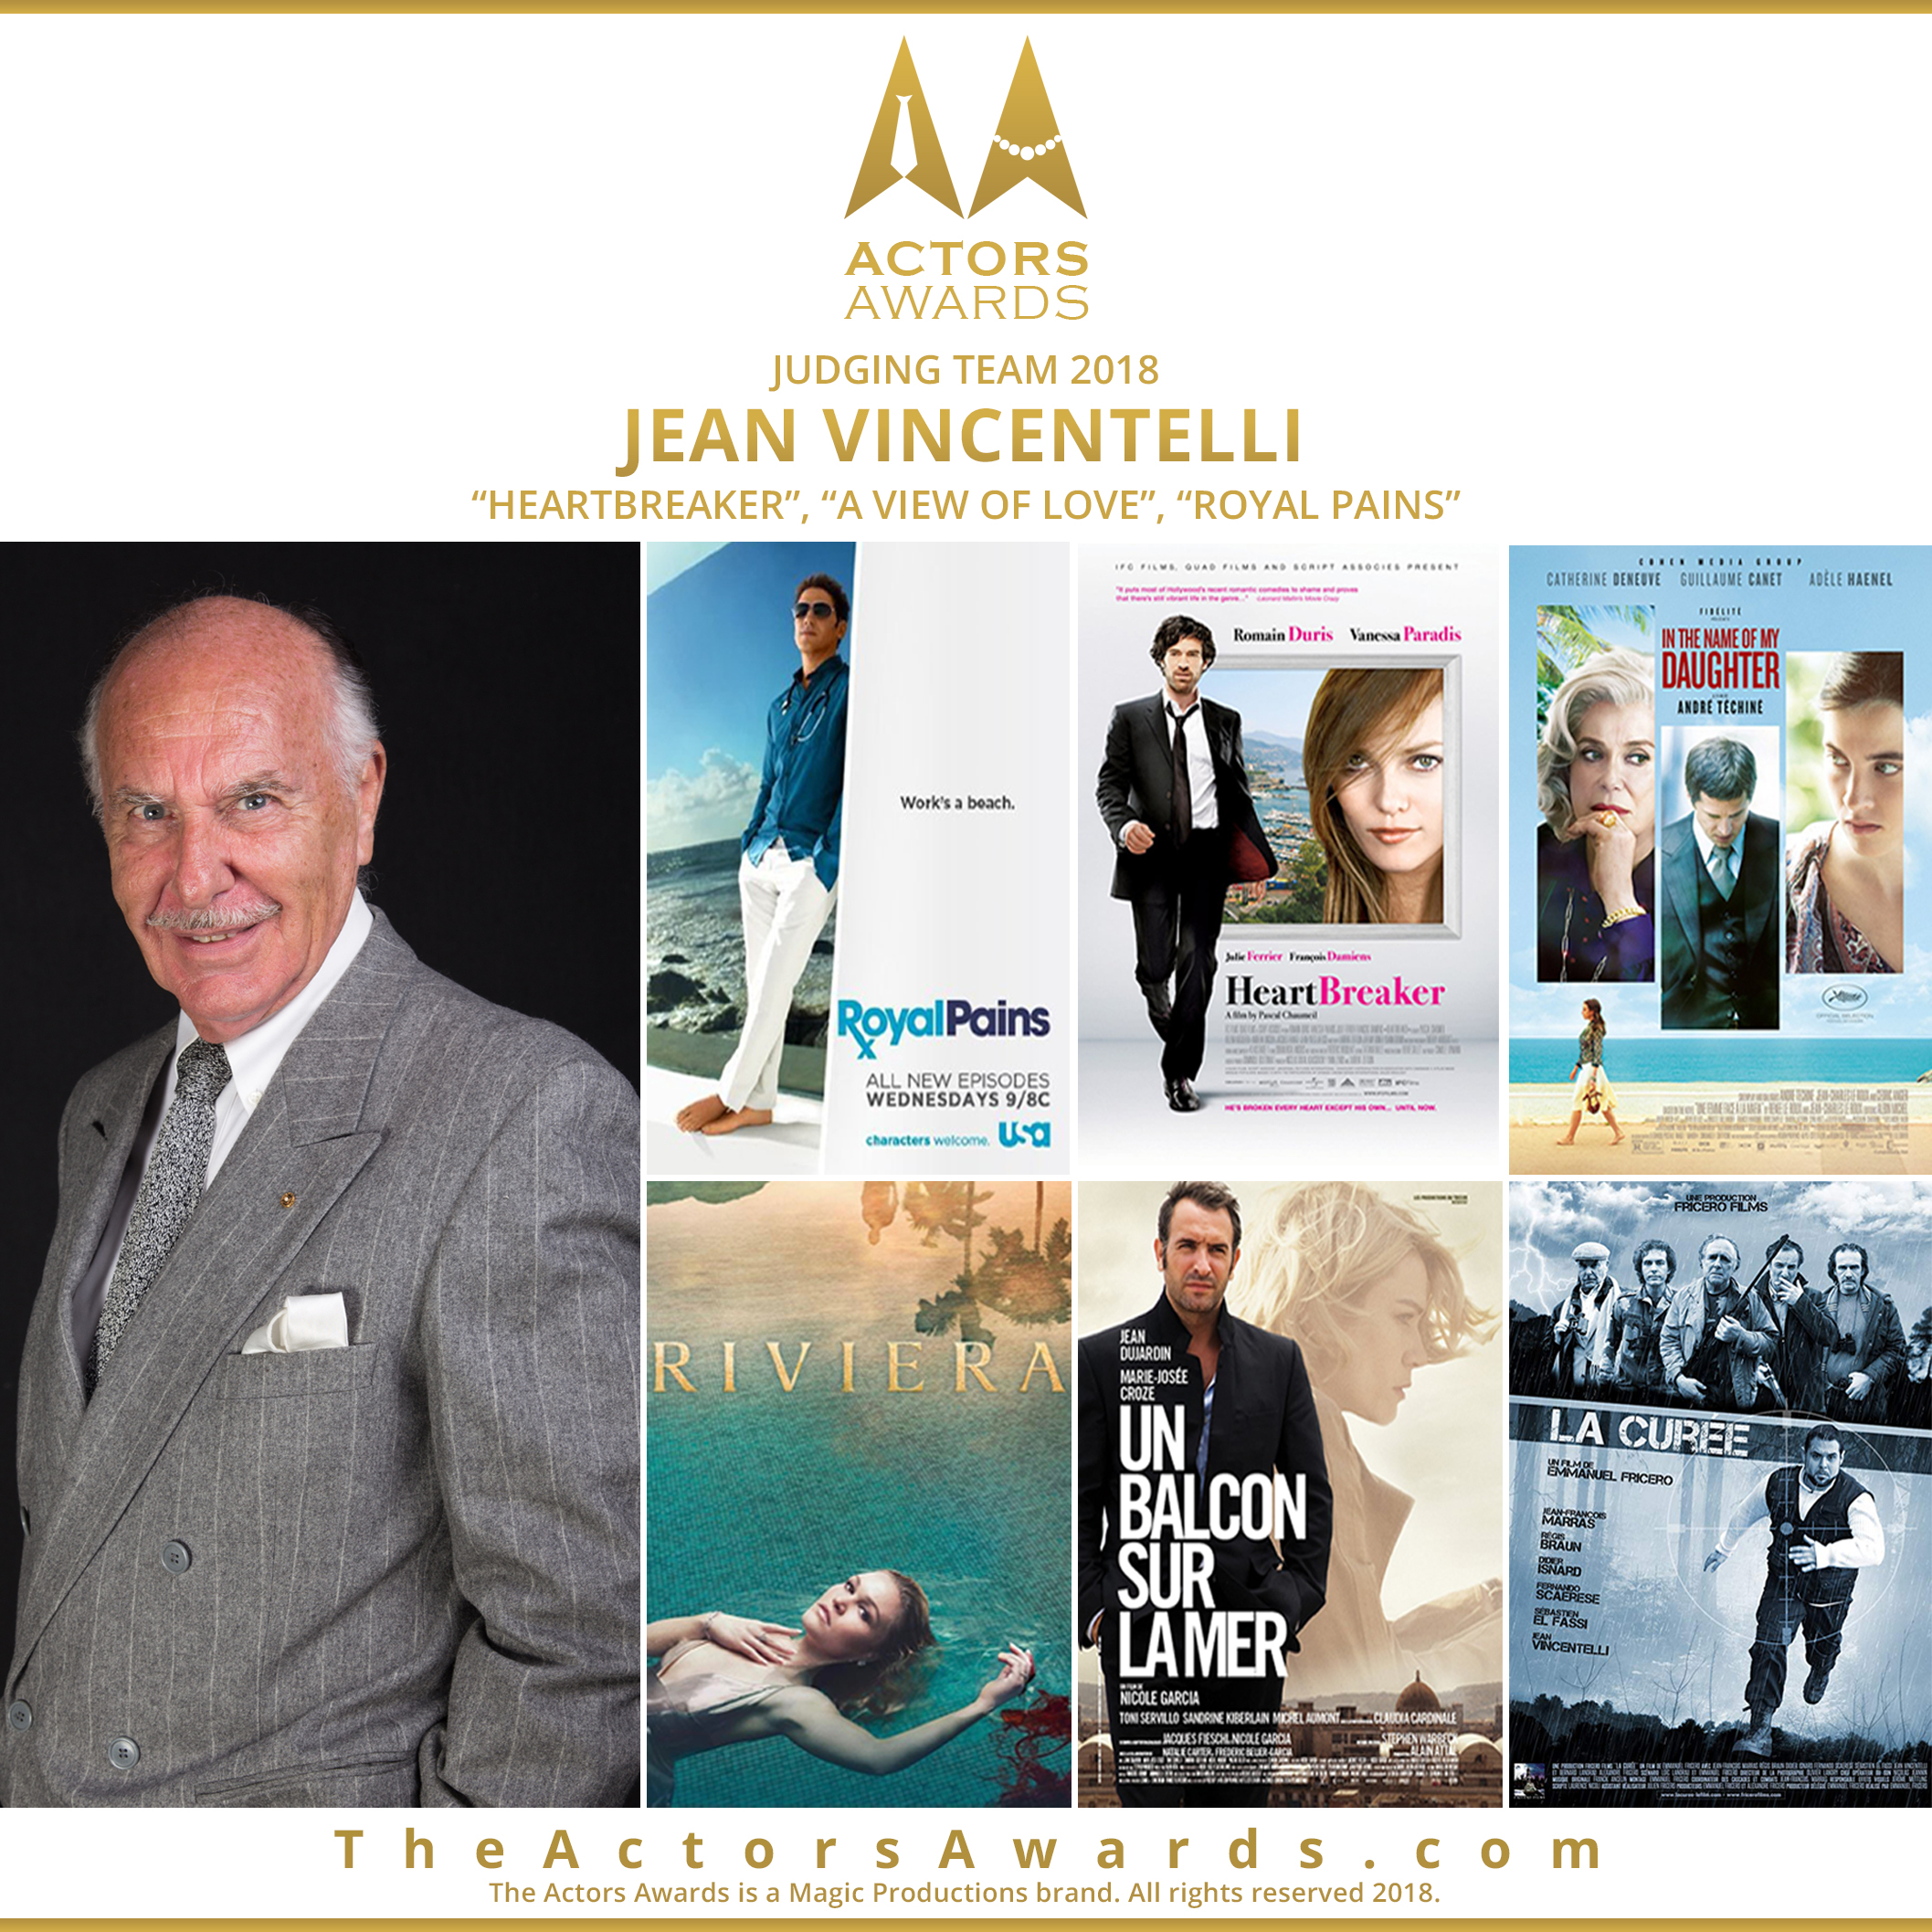 Actors Awards 2018 - Jean Vincentelli